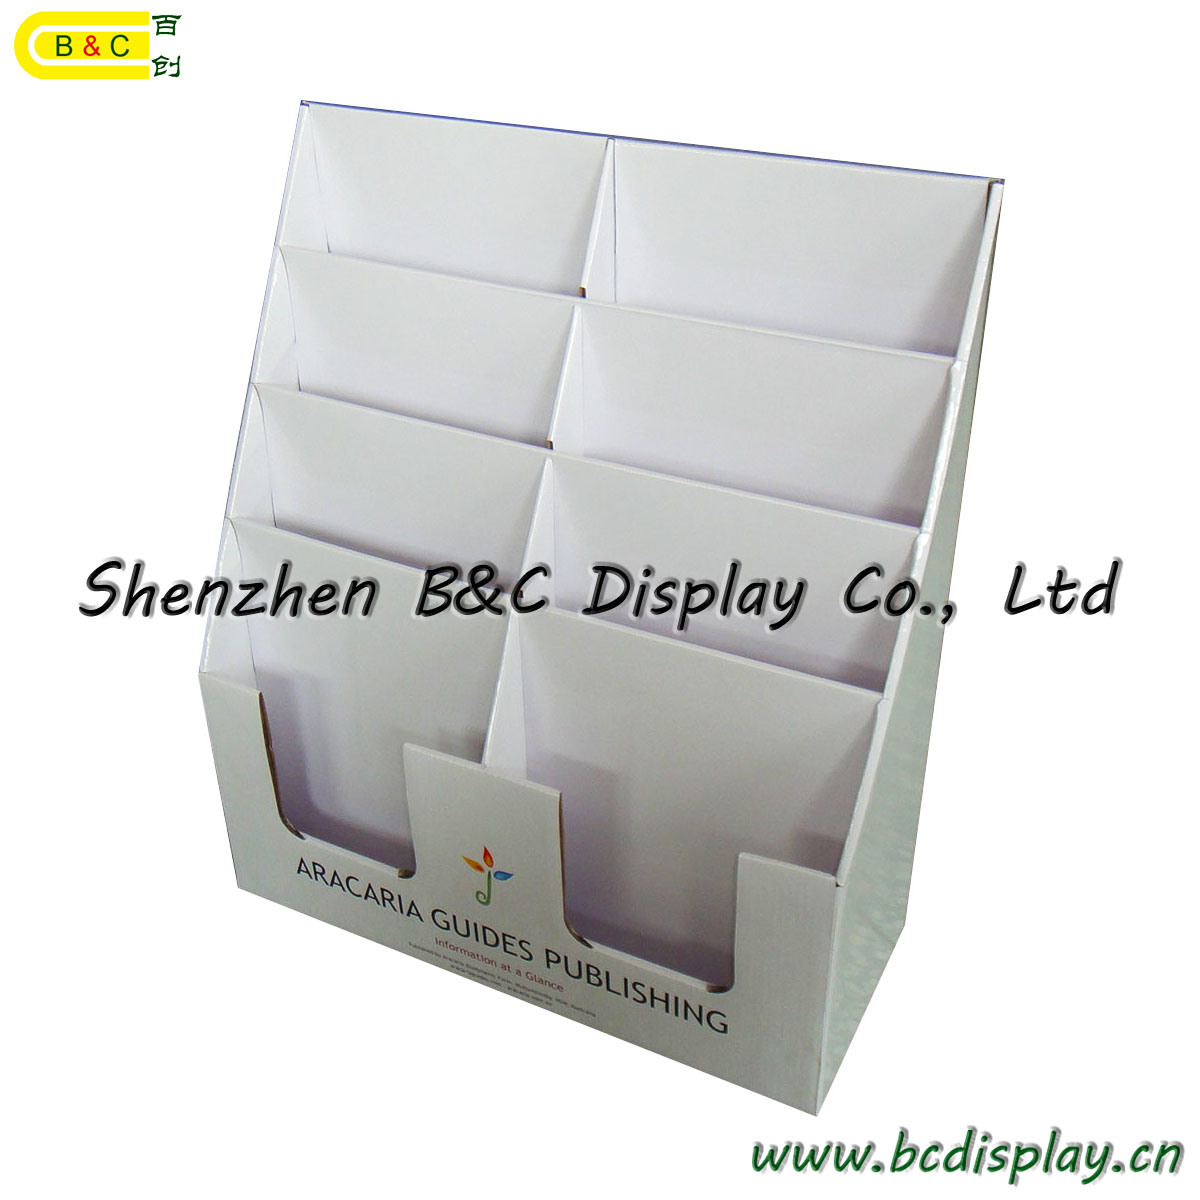 Notebook Counter PDQ, Table PDQ, Office PDQ Display Box, Display Stand (B&C-D032)